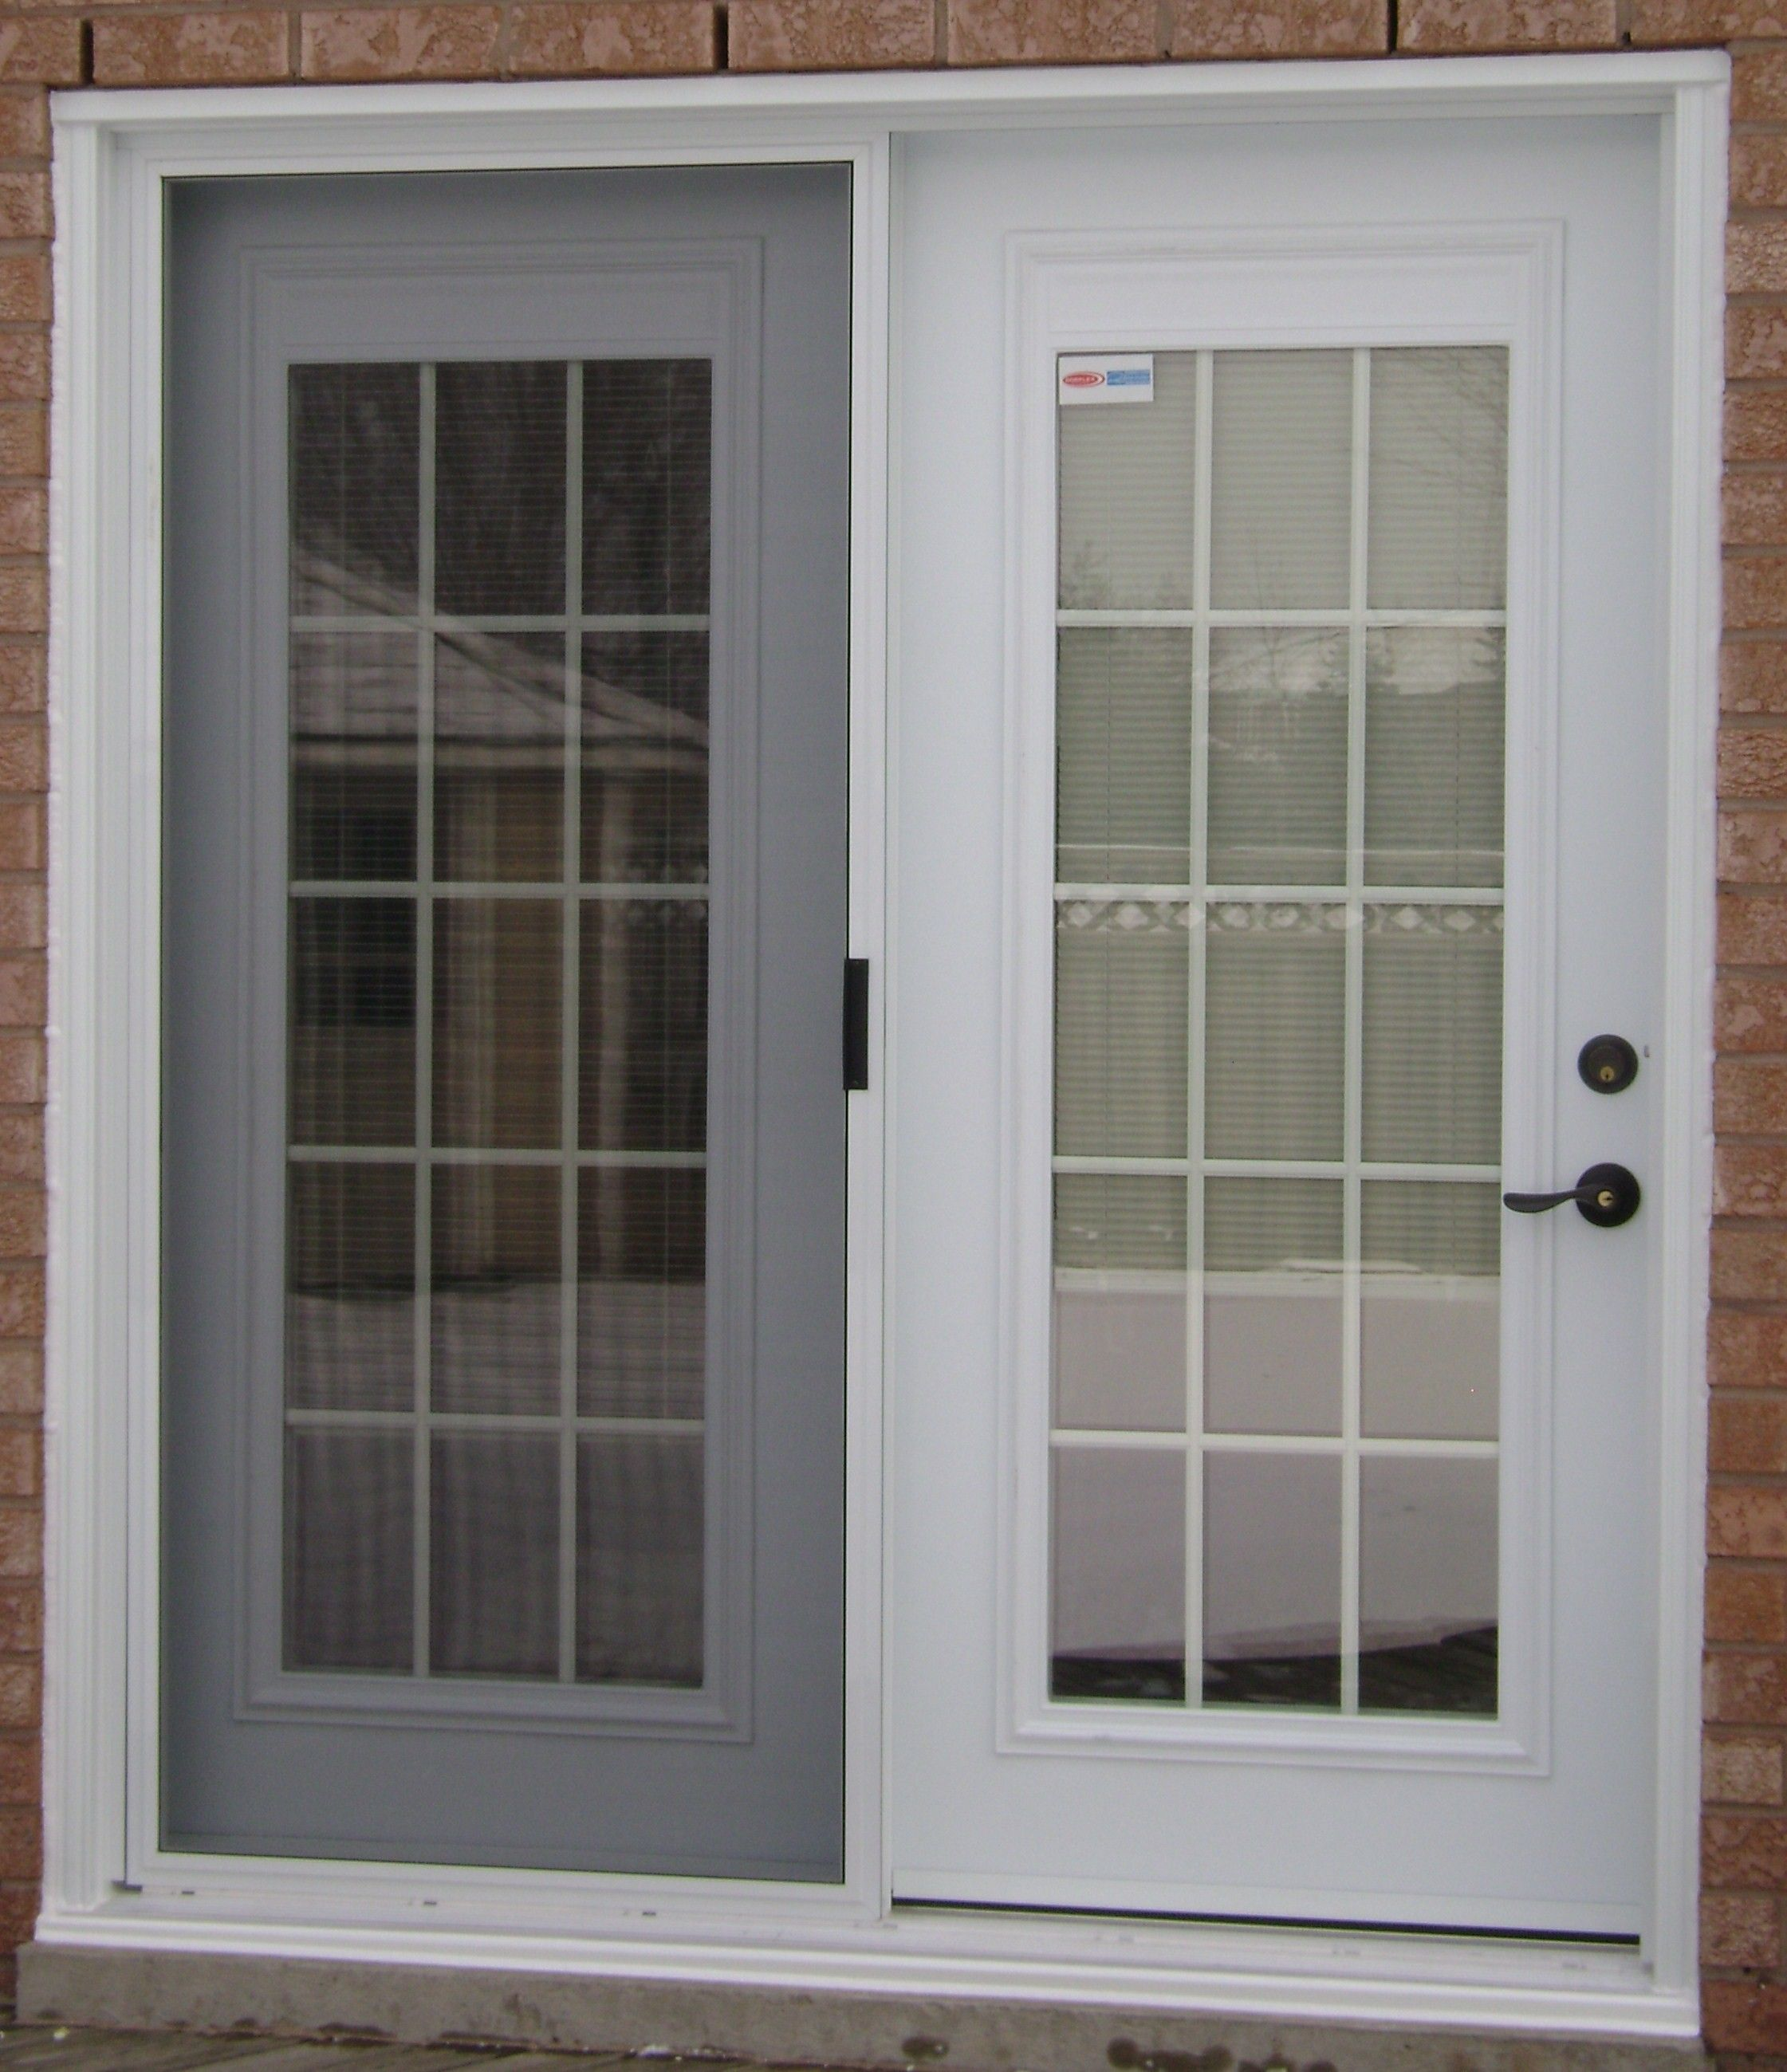 Awesome lovely patio blinds interesting french doors patio blinds